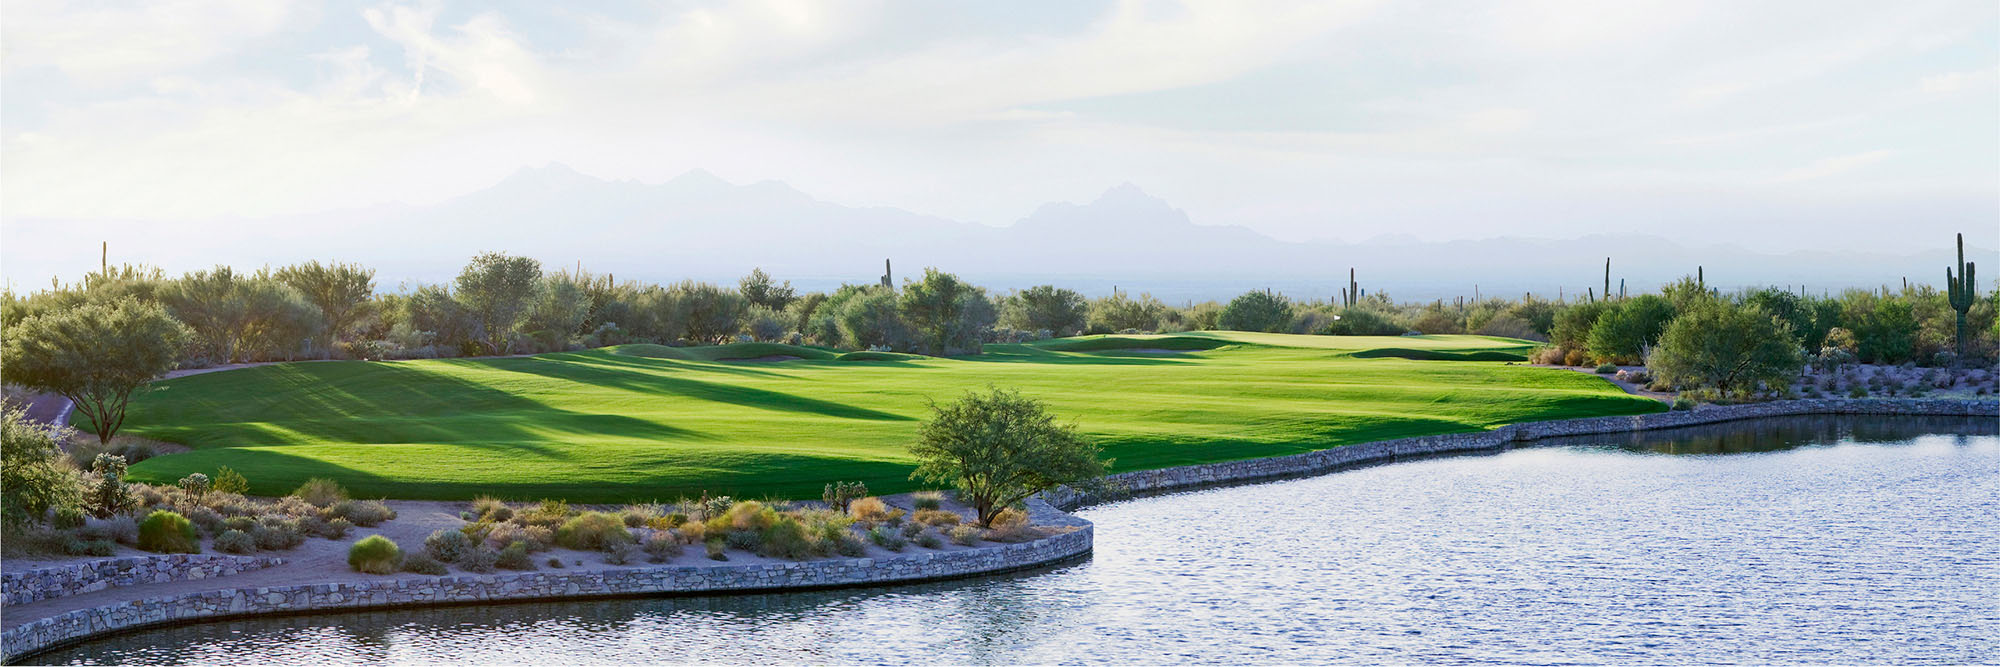 Golf Course Image - The Gallery South Course No. 4